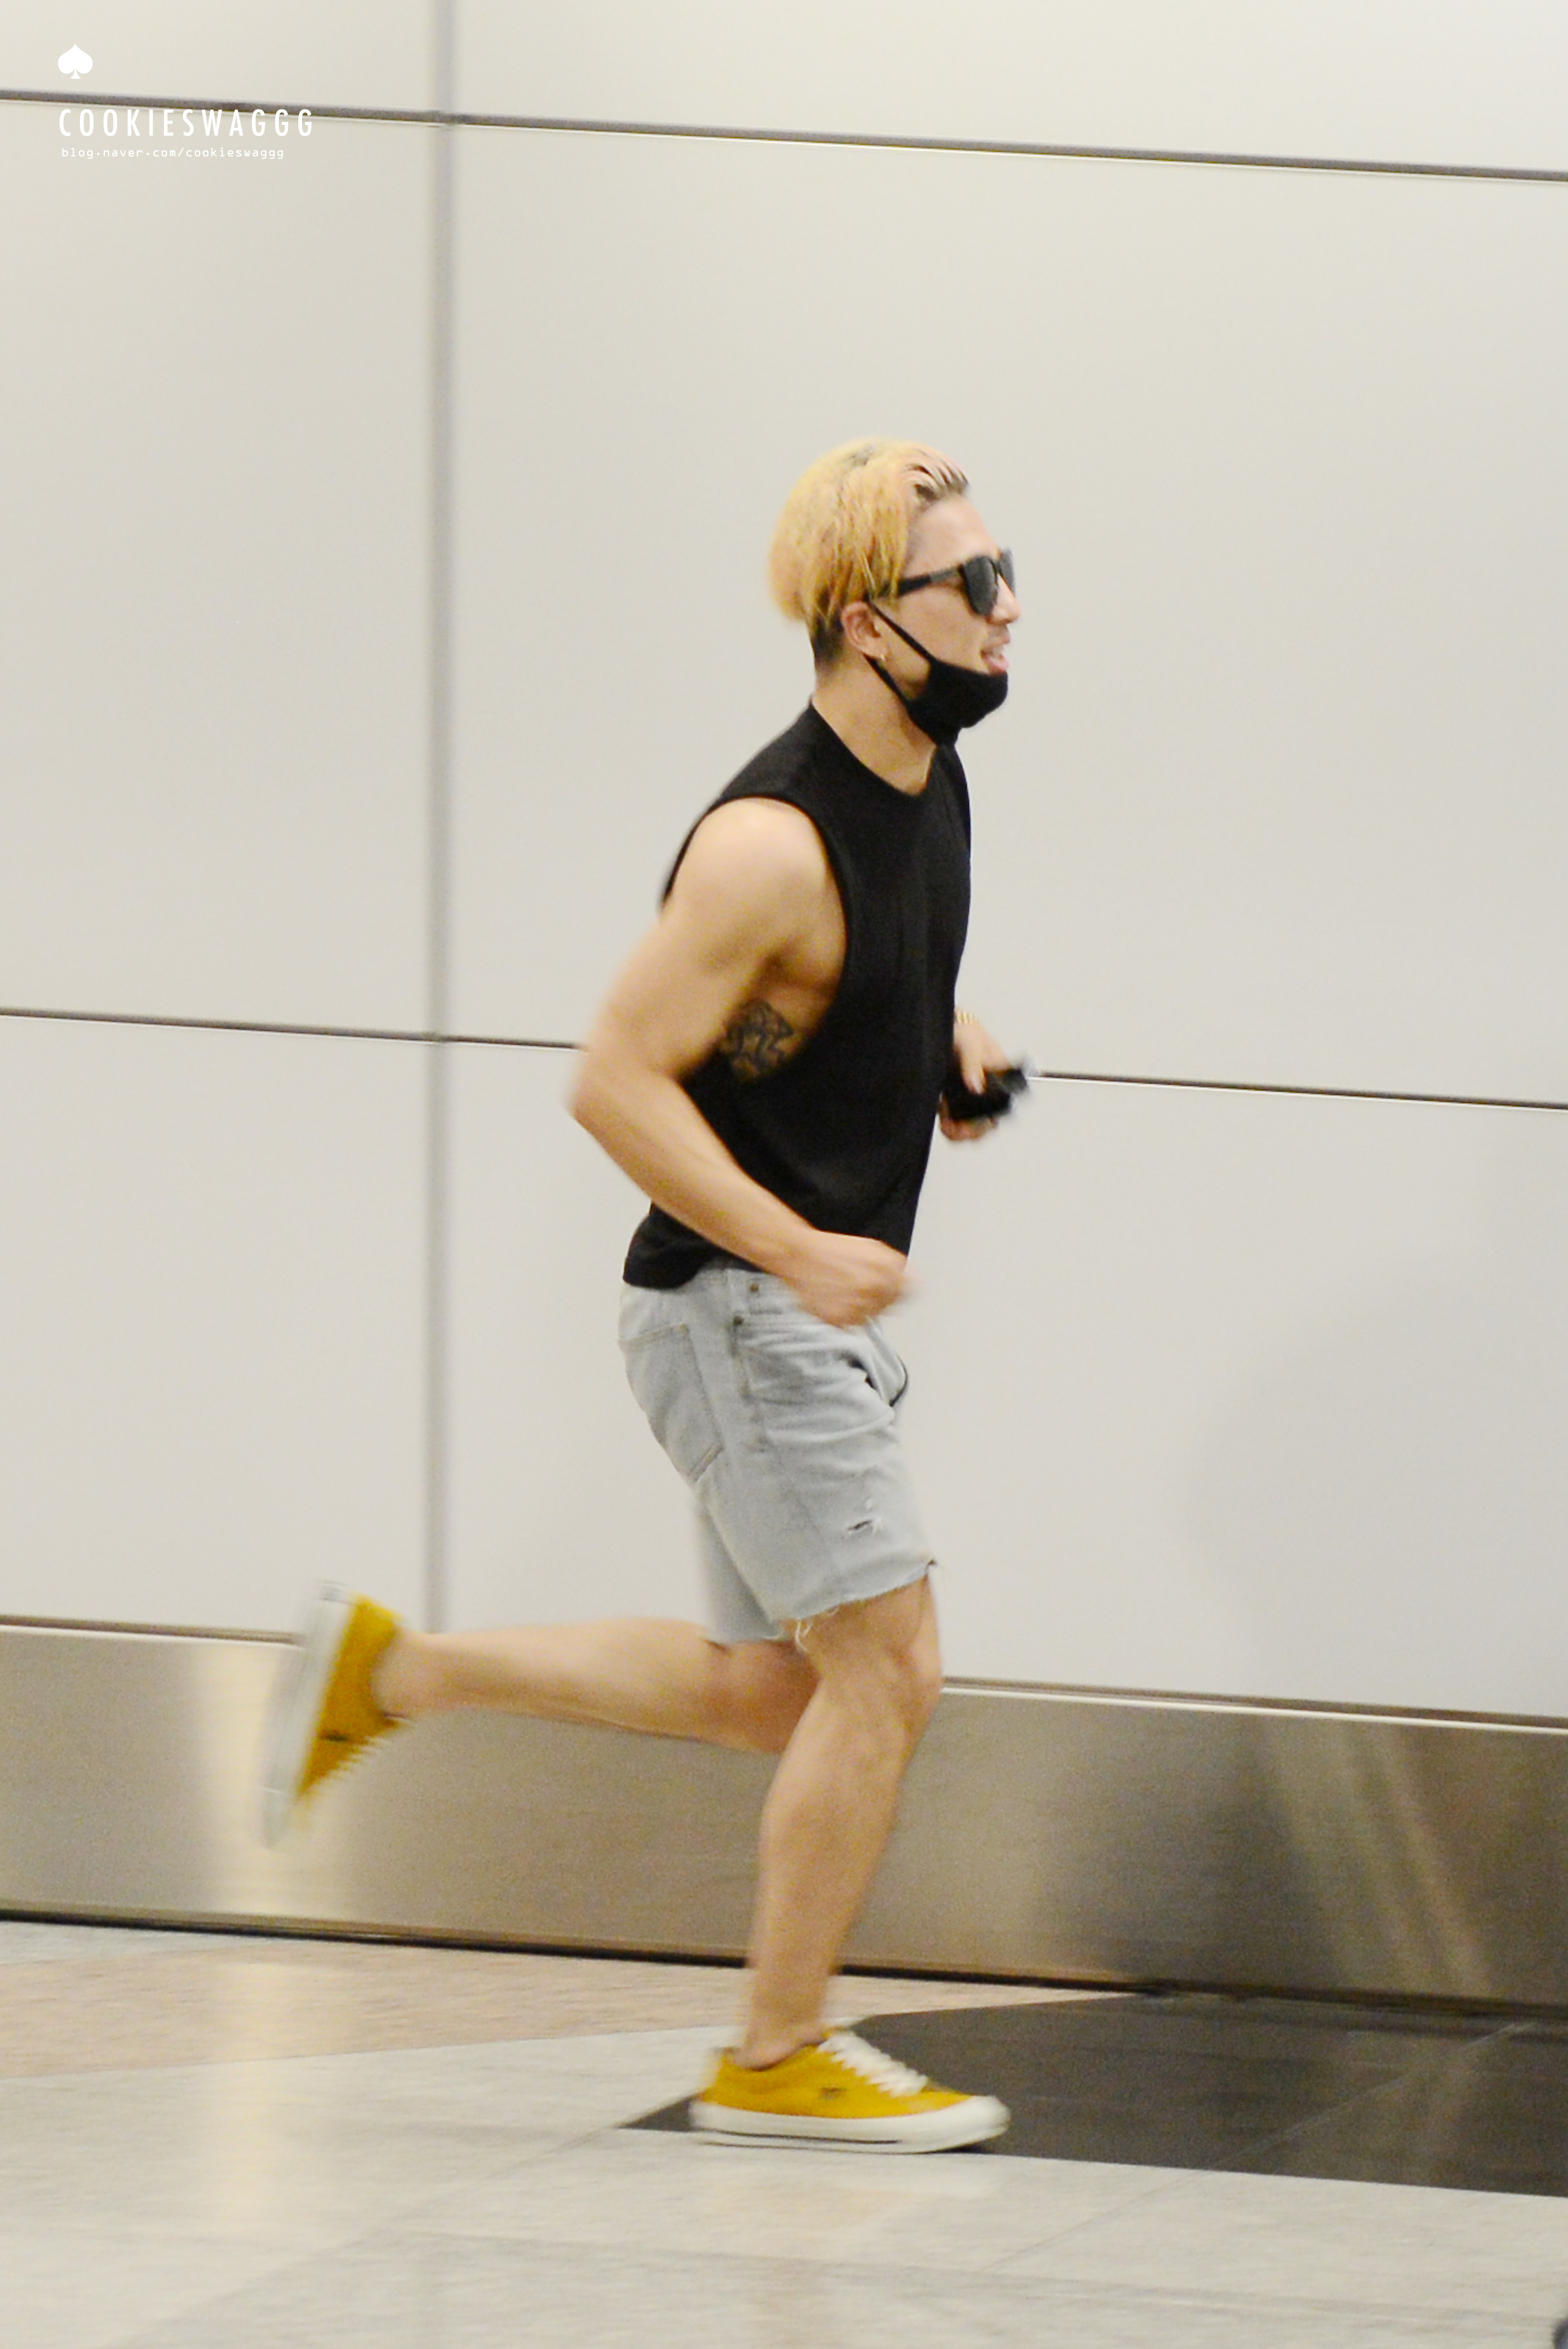 Big Bang - Malaysia Airport - 25jul2015 - cookieswaggg - 16.jpg